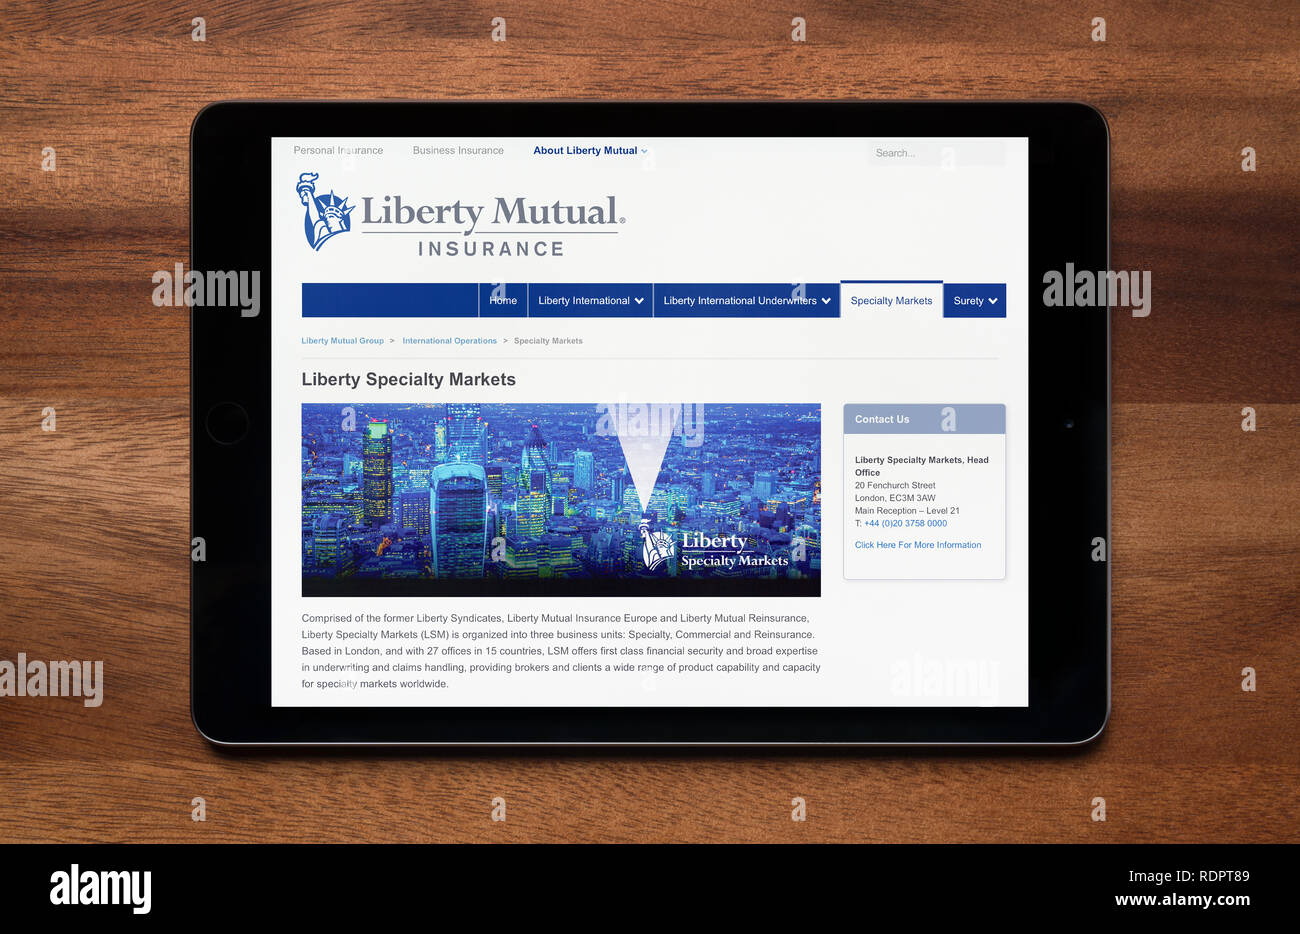 The website of Liberty Mutual Insurance is seen on an iPad tablet, which is resting on a wooden table (Editorial use only). - Stock Image